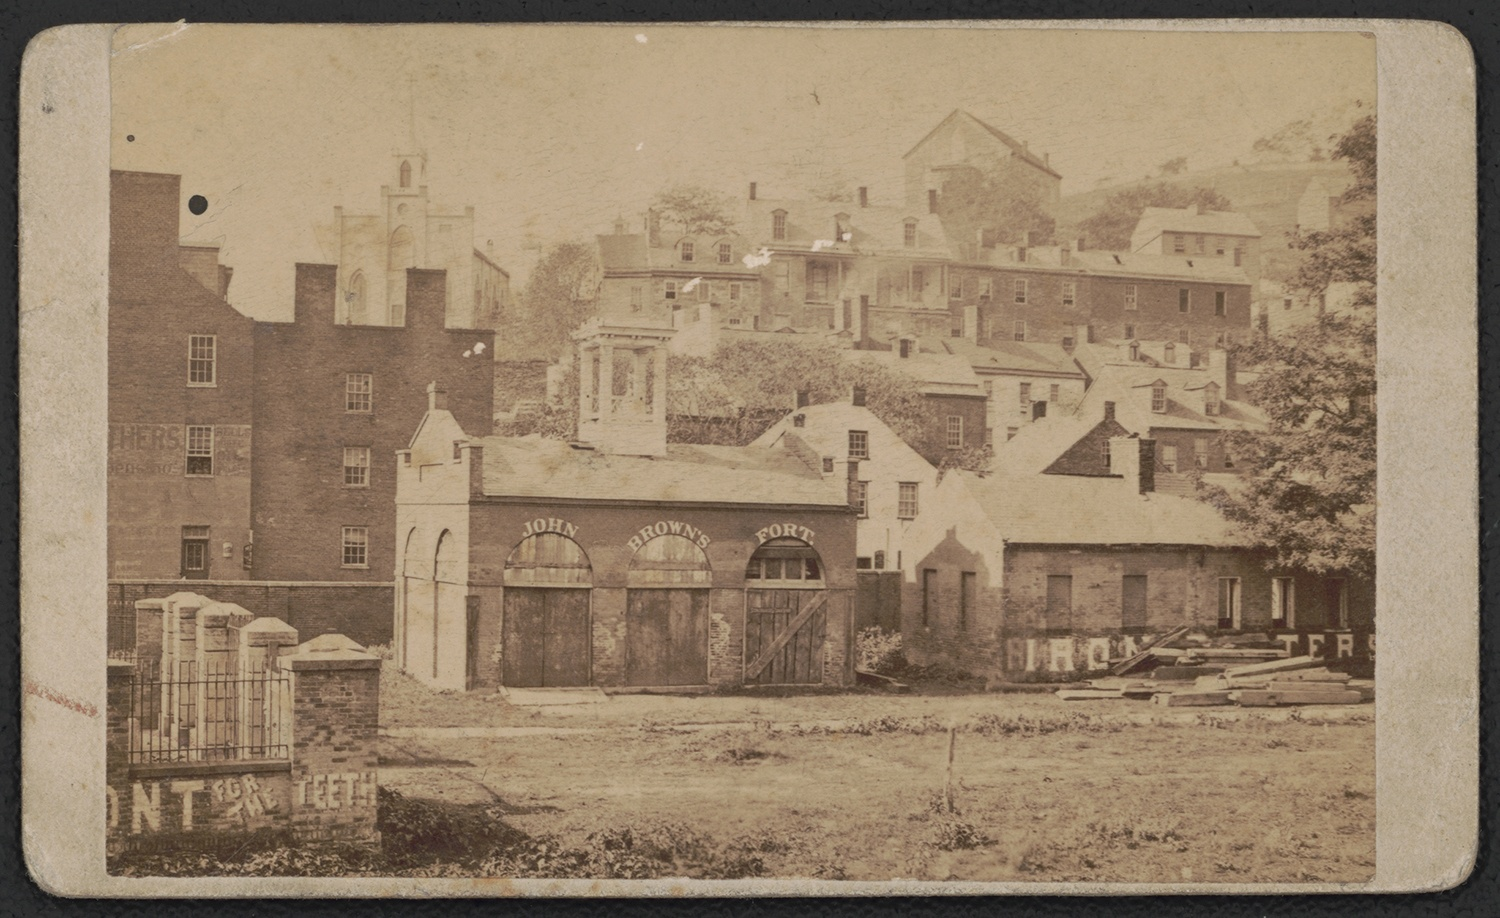 """Photograph showing the fire engine house used by John Brown during his raid on Harper's Ferry, c. 1885. The words """"John Brown's Fort"""" were painted on the building to attract tourists. Courtesy of the Library of Congress, Prints and Photographs Division."""